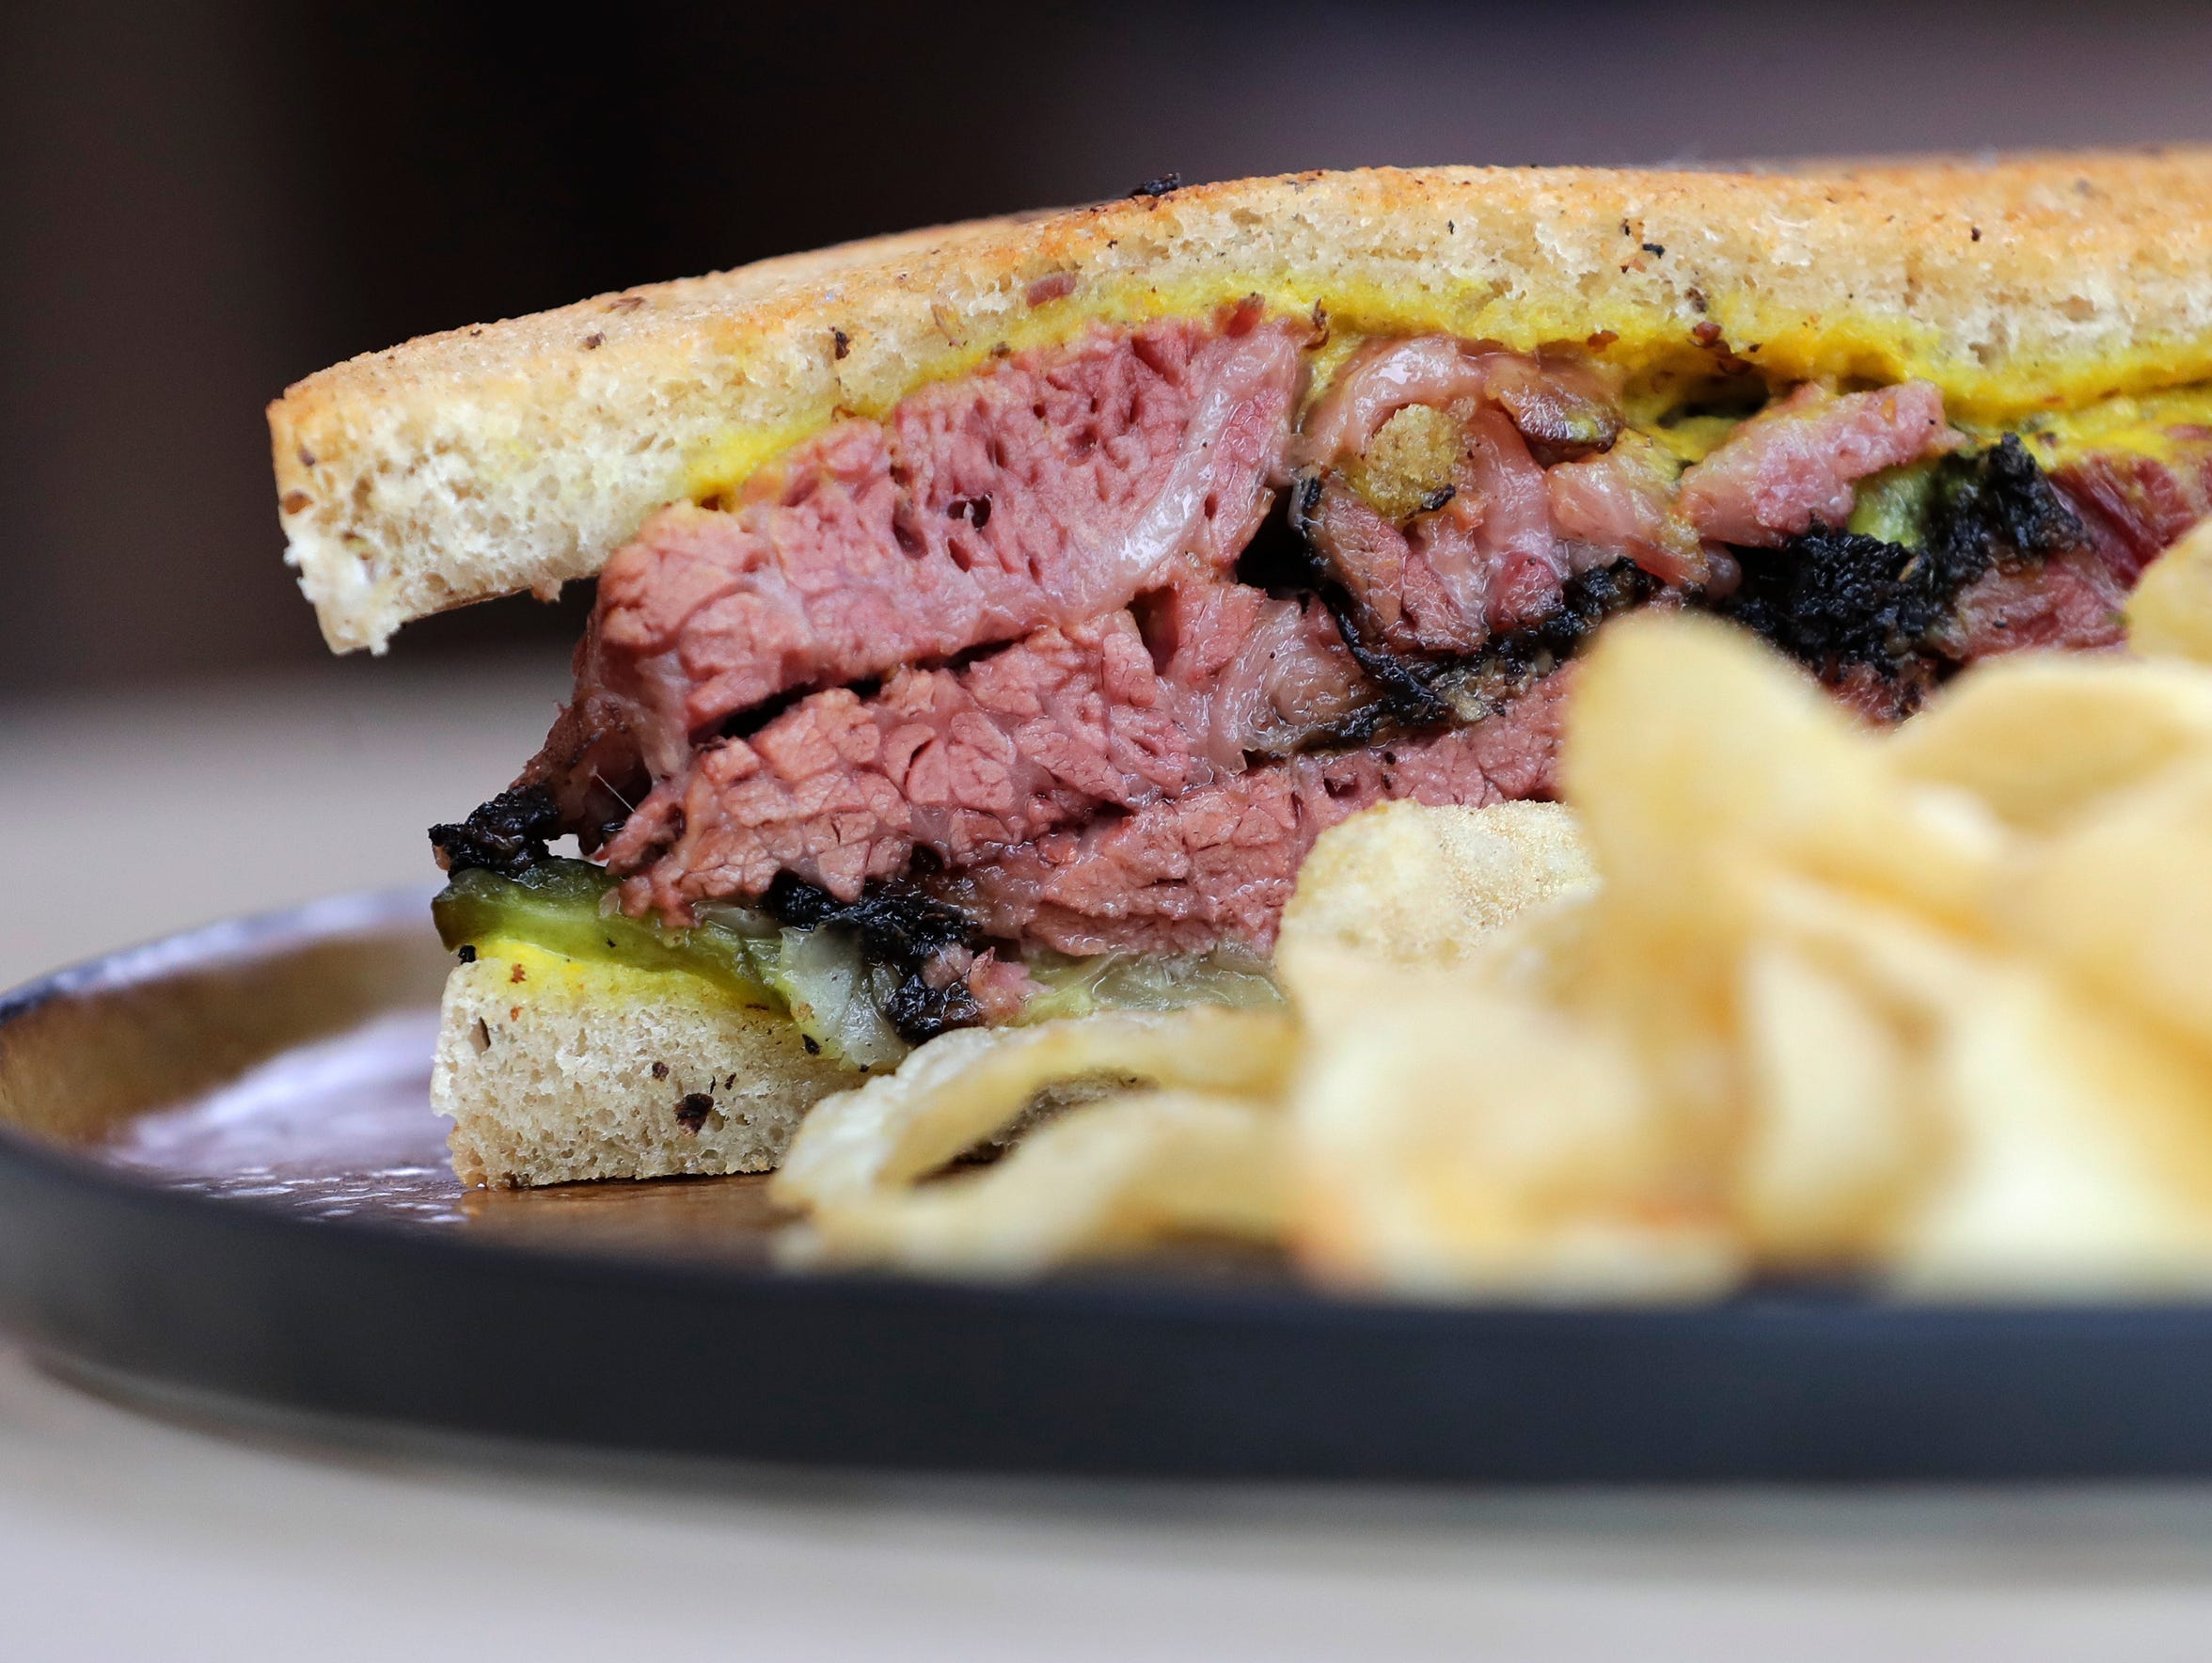 The pastrami sandwich is shown at Hinterland Brewing